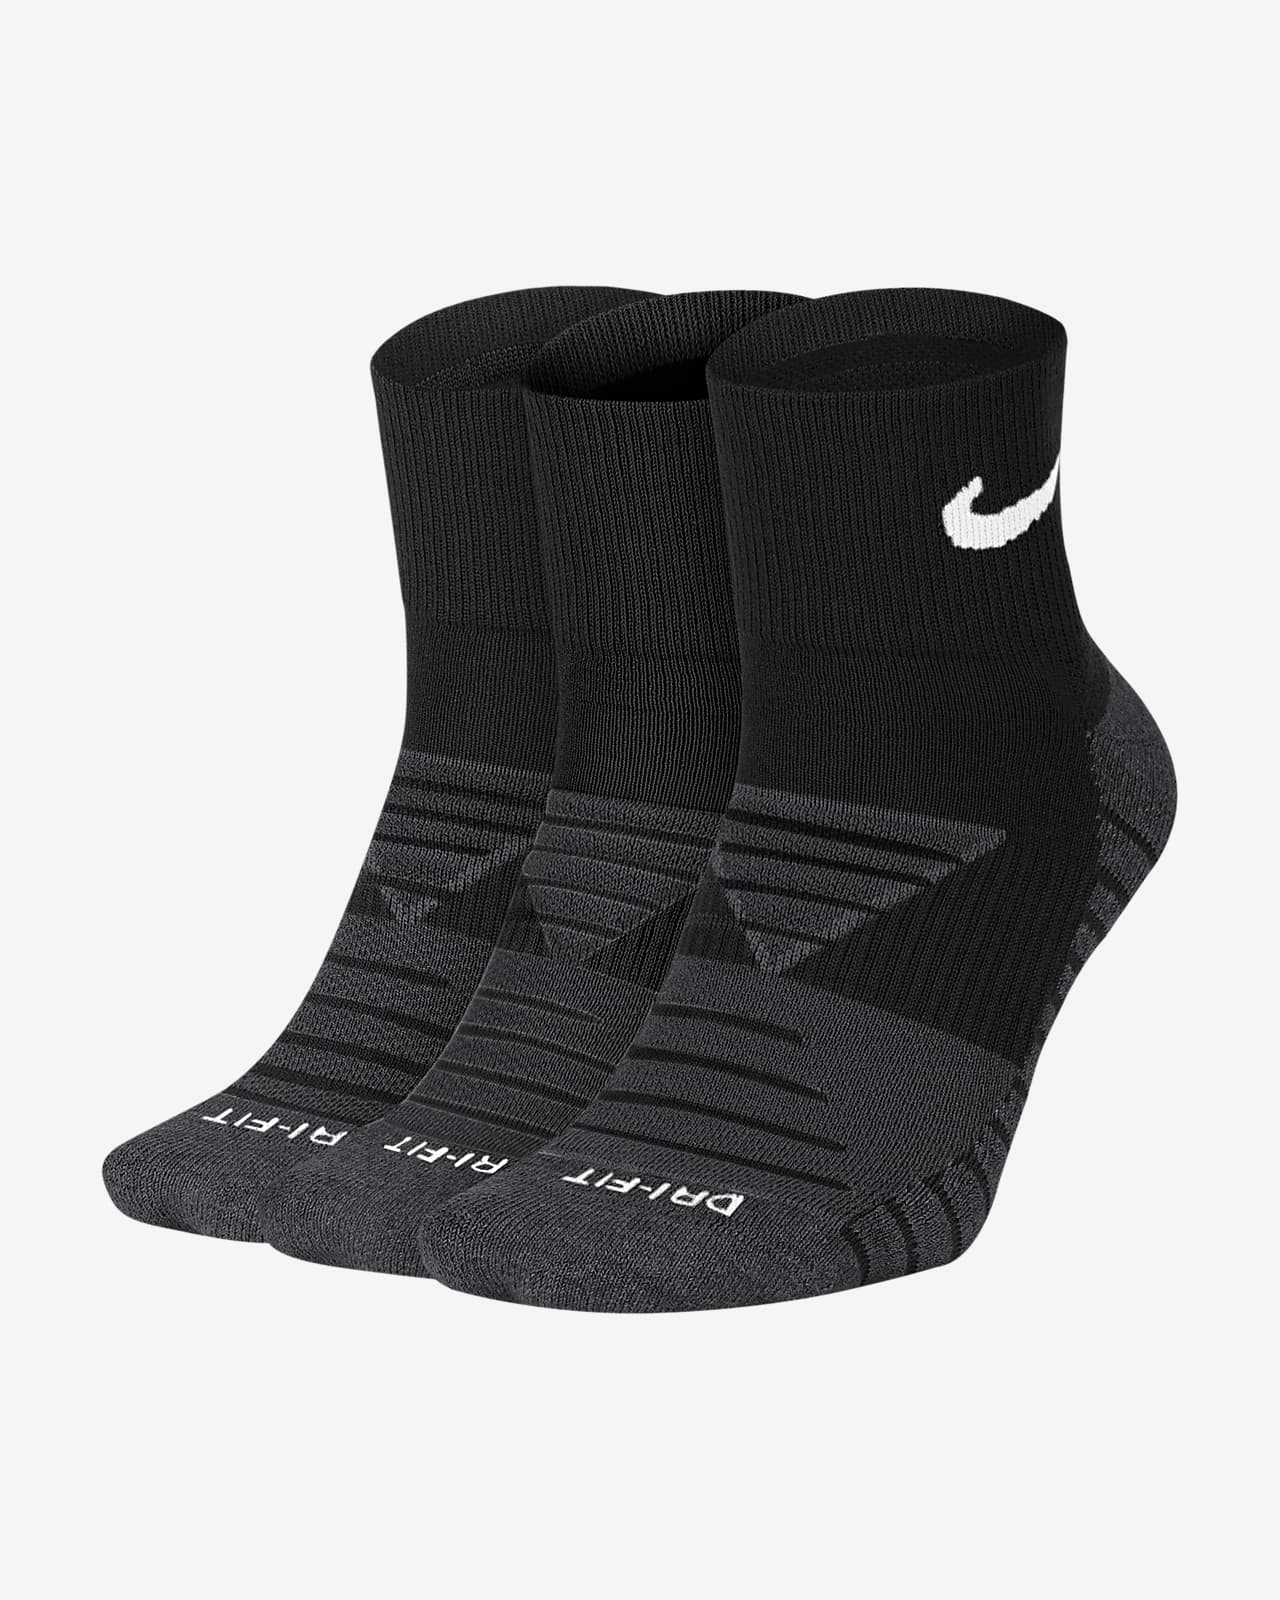 Nike Everyday Max Cushioned Training Ankle Socks (3 Pairs)